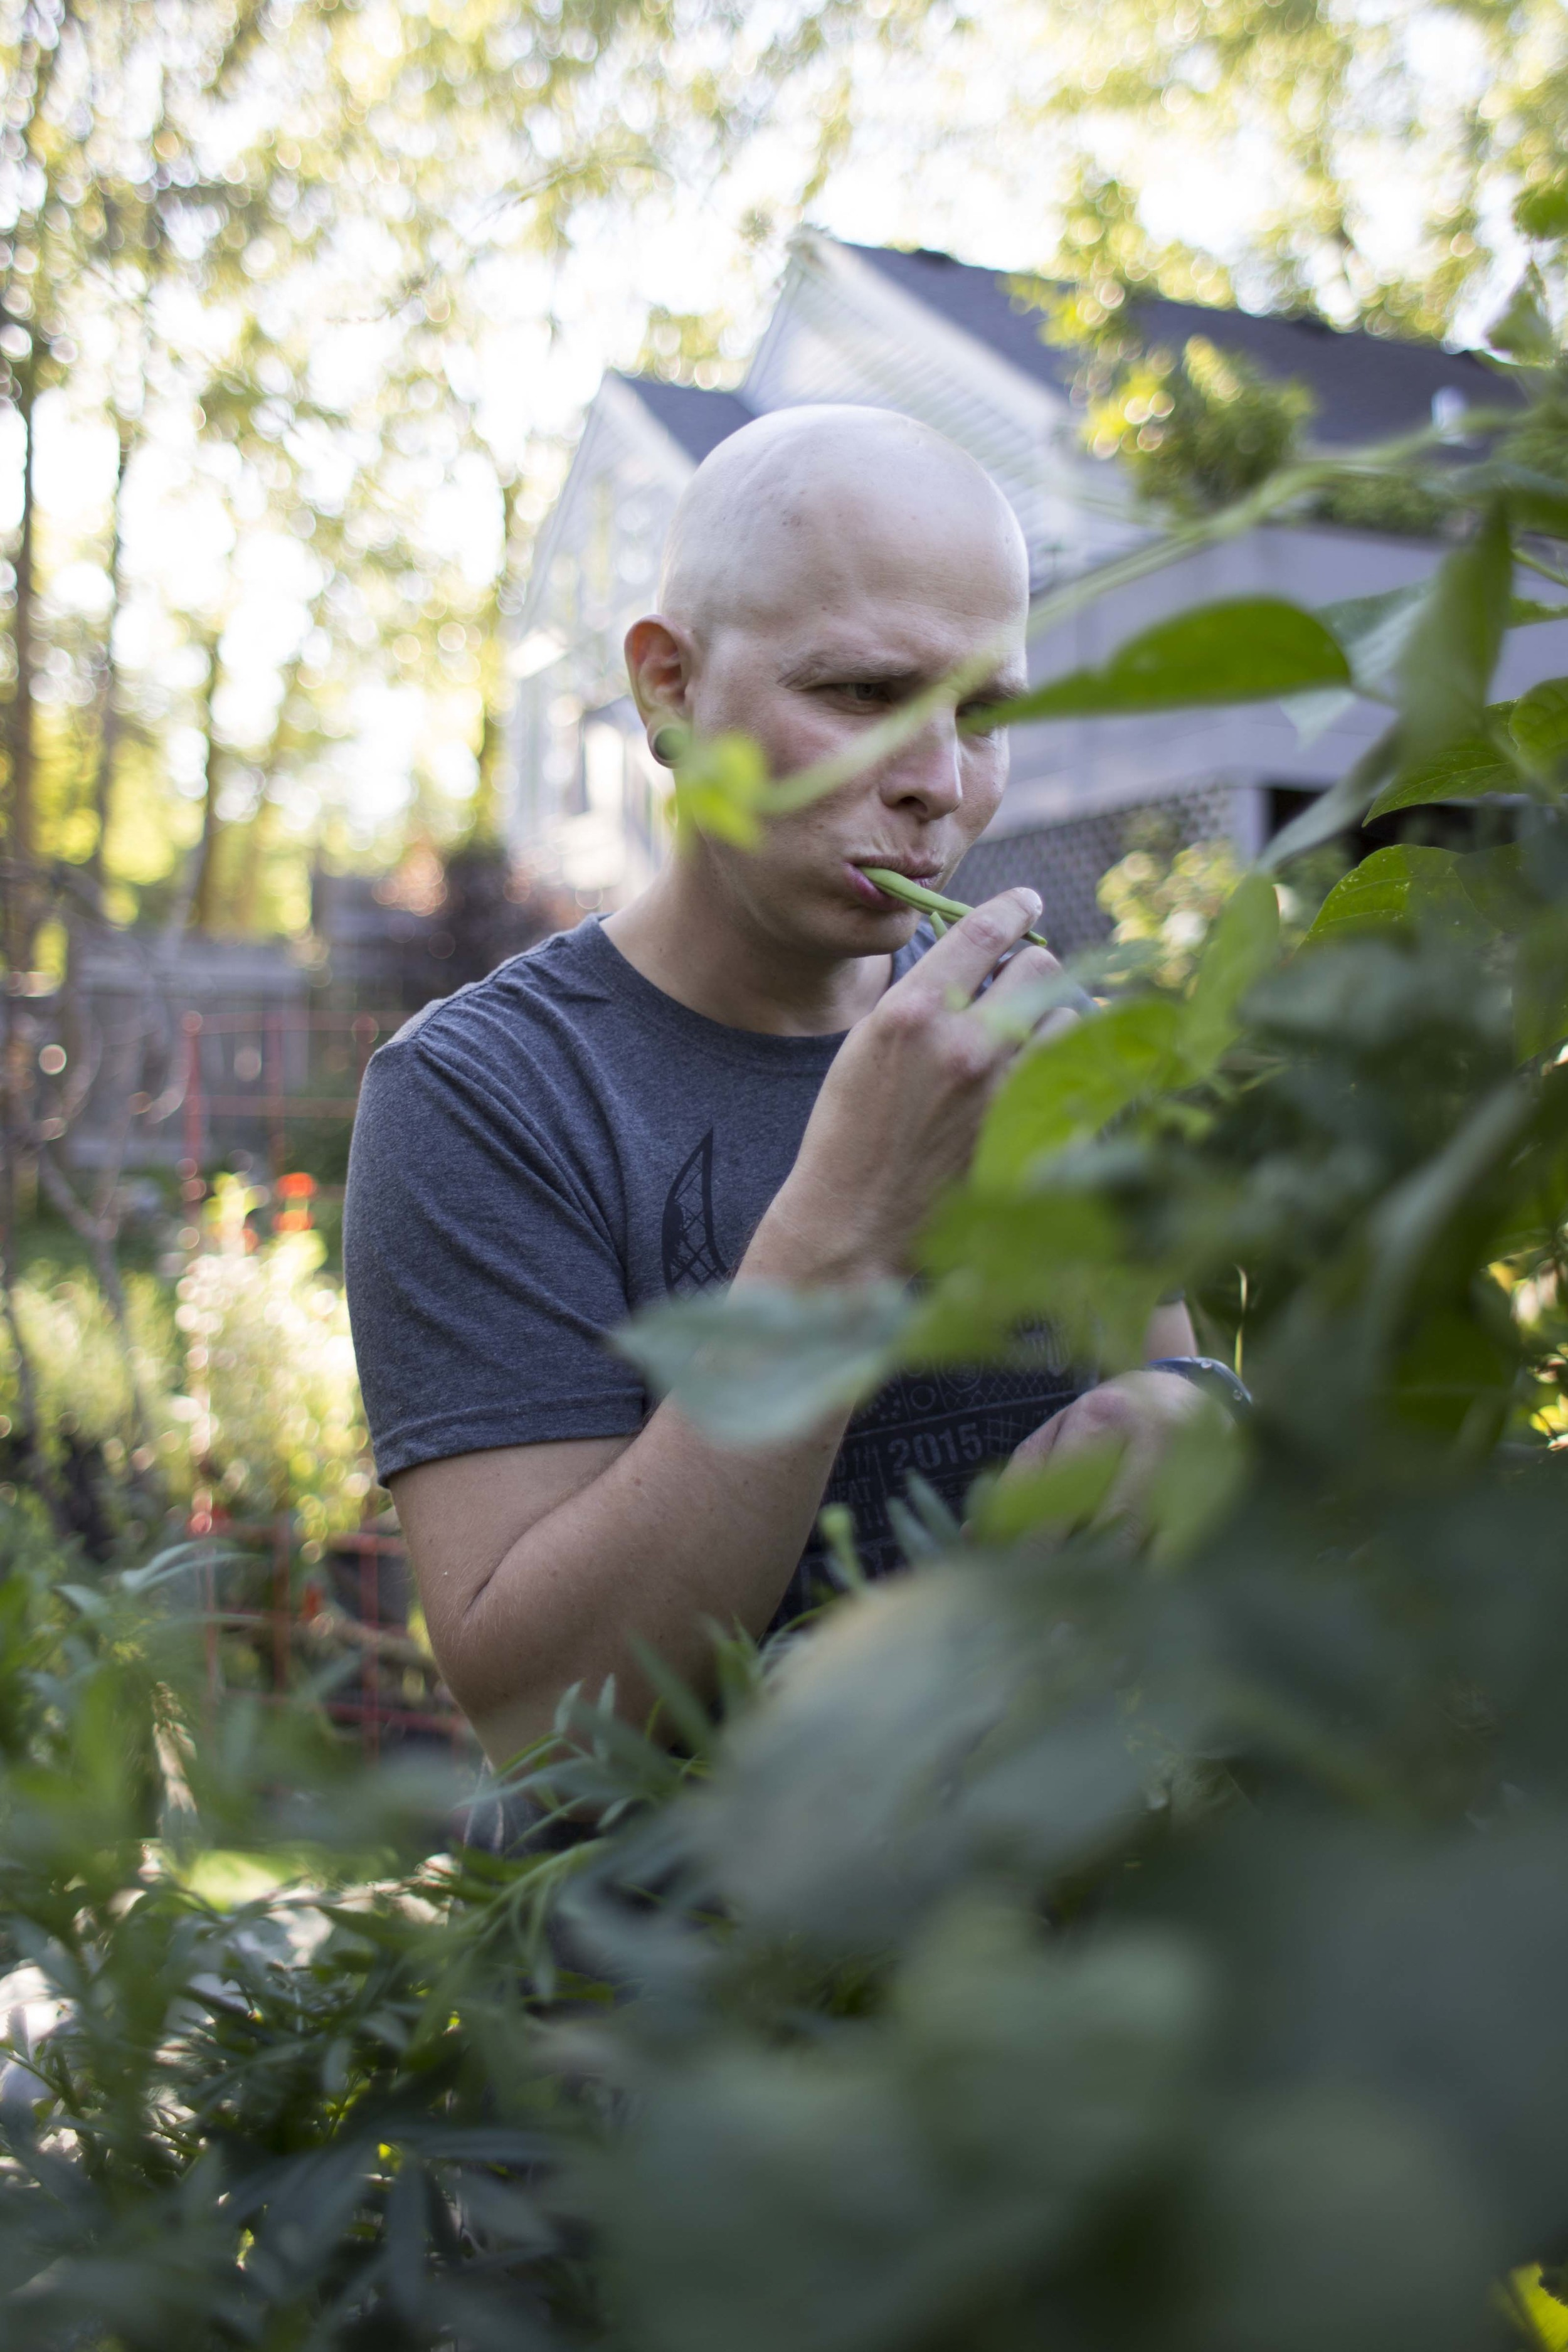 Nate chomps on a snap pea from the garden